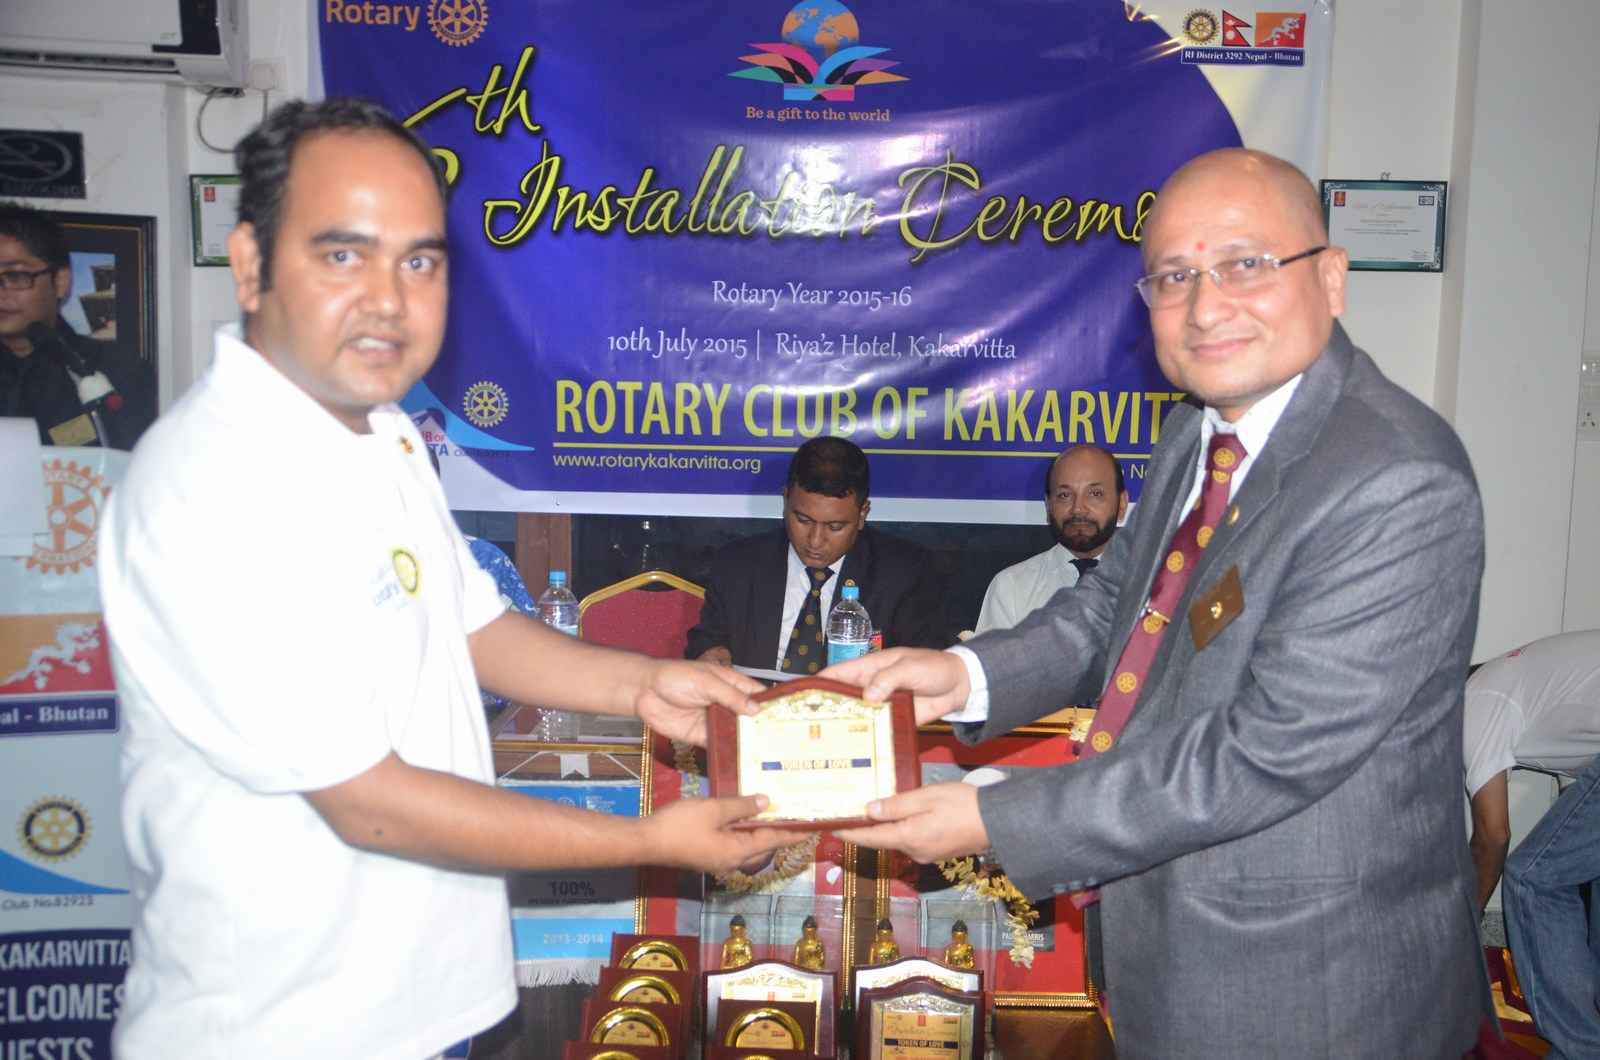 6th Installation Ceremony 2015 16 Rotary Club Of Kakarvitta 16